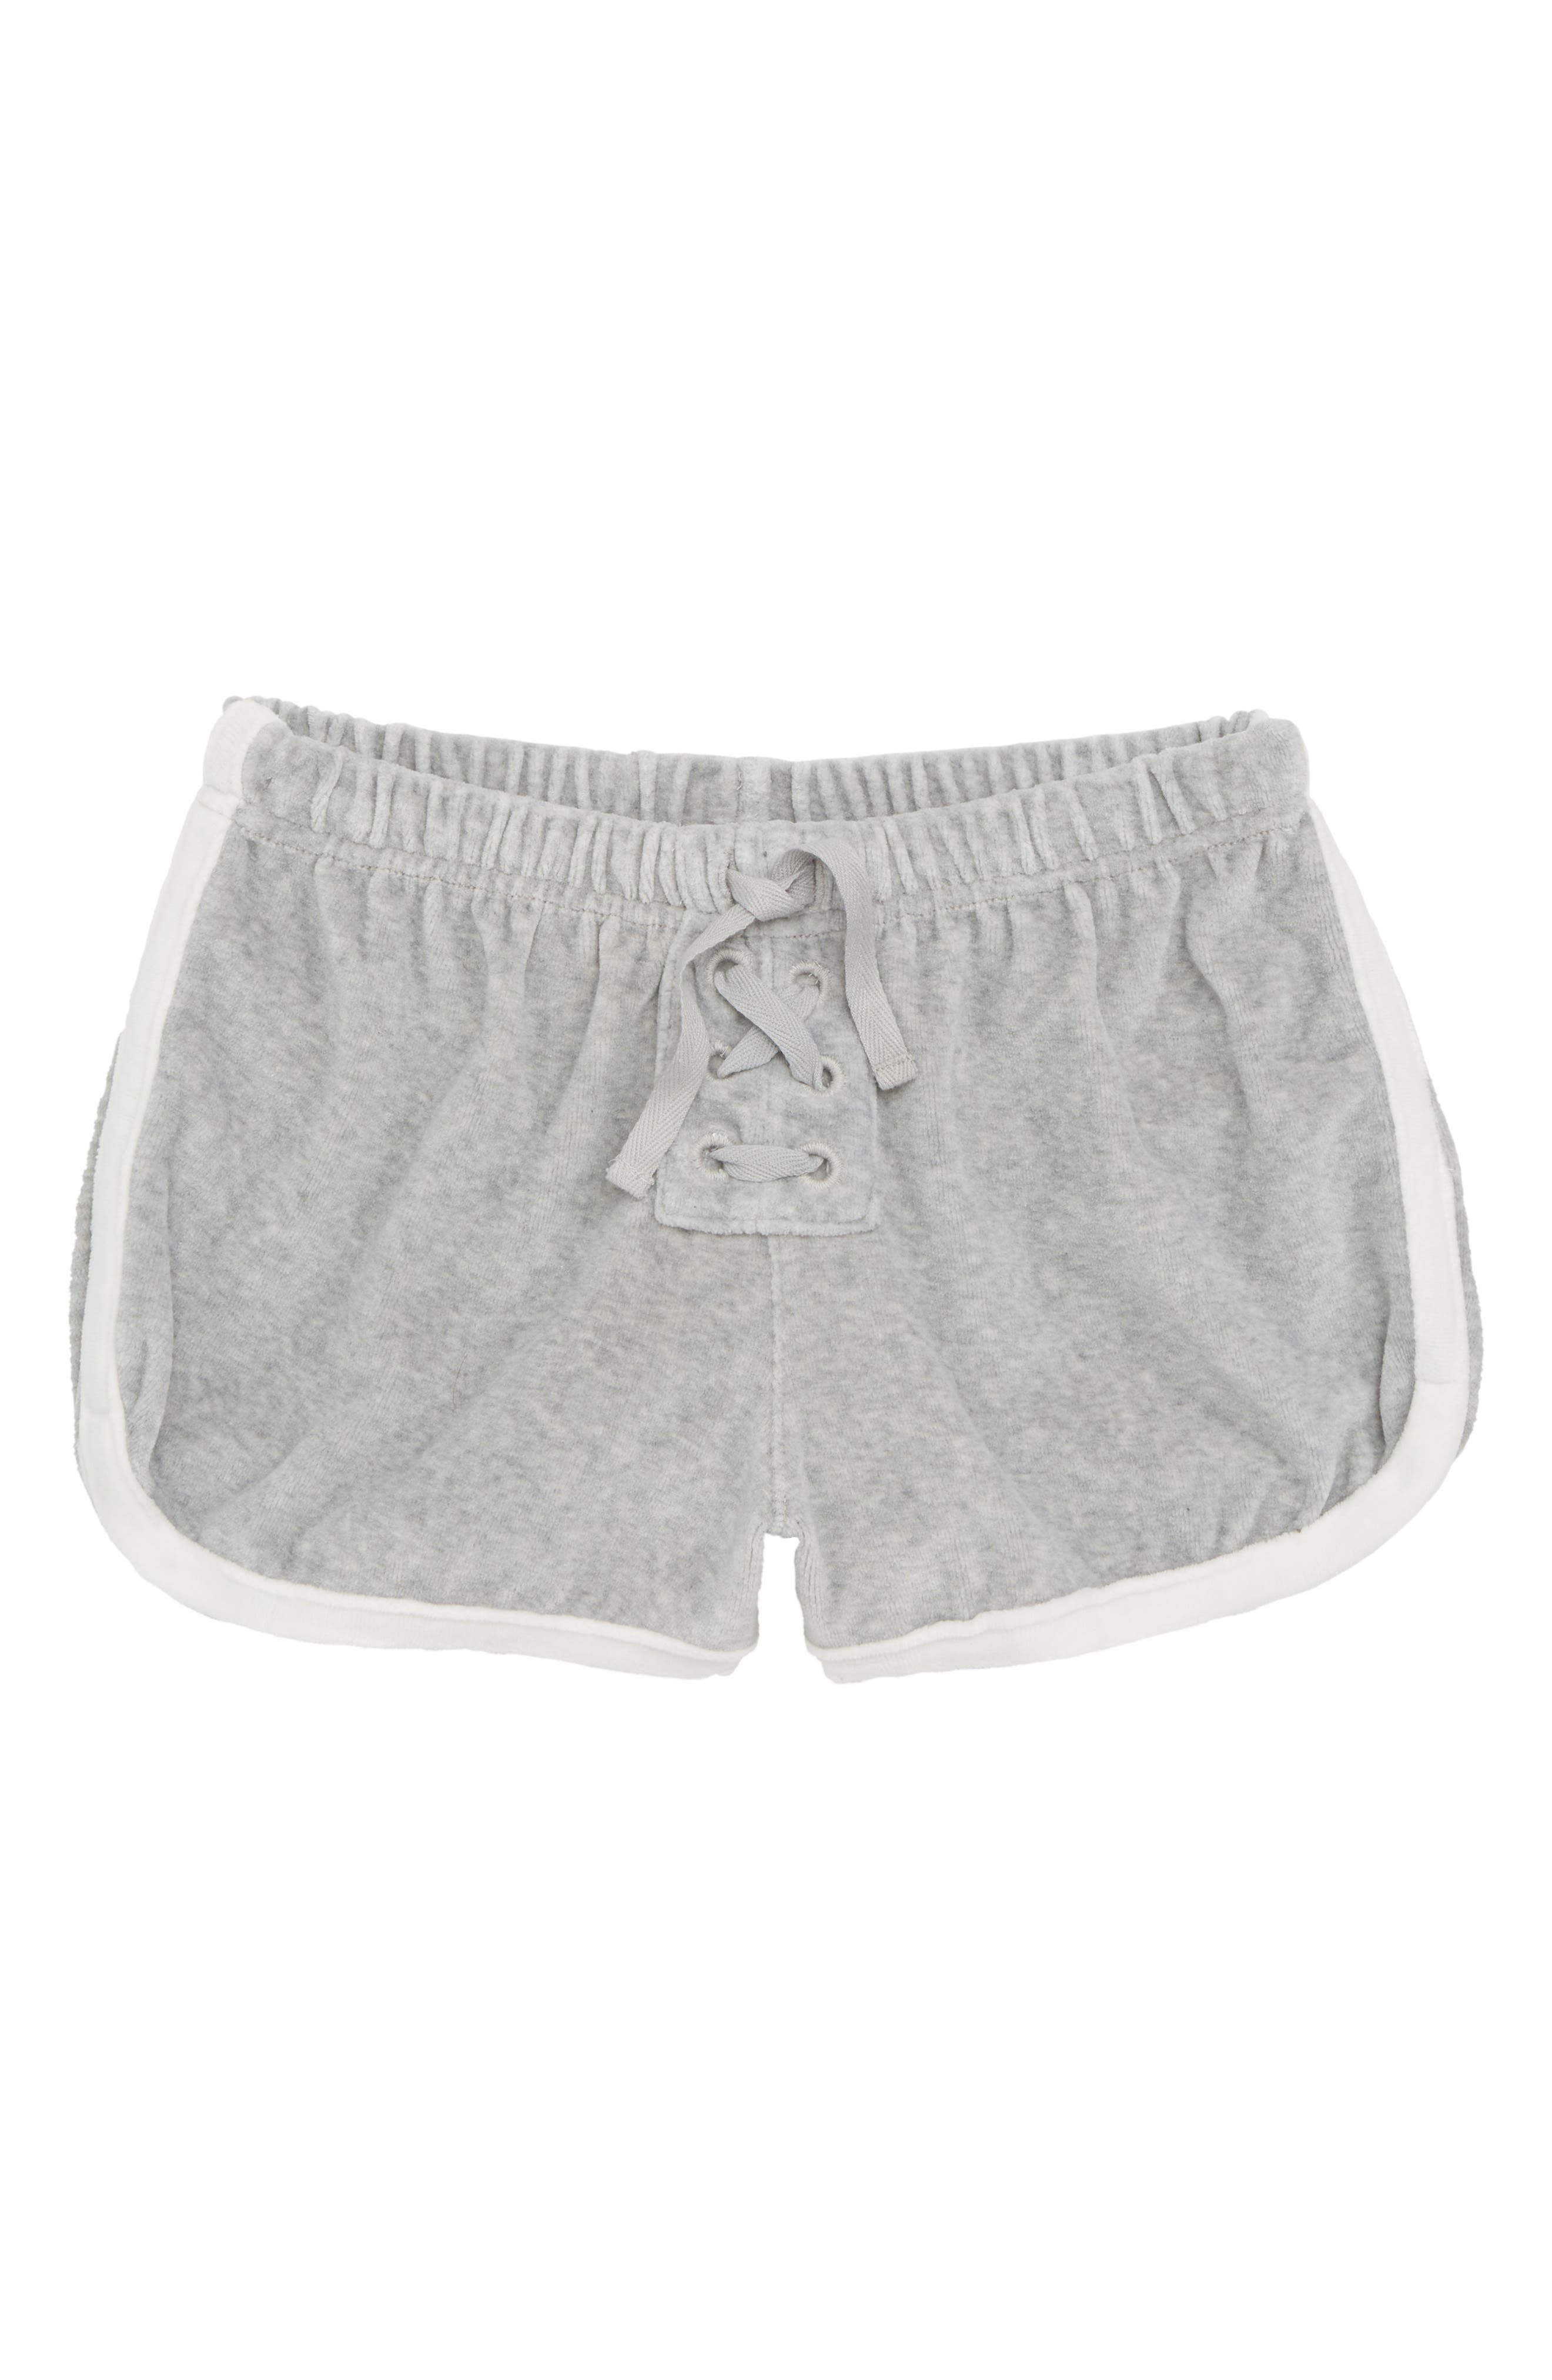 Velour Track Shorts,                         Main,                         color, Grey Ash Heather